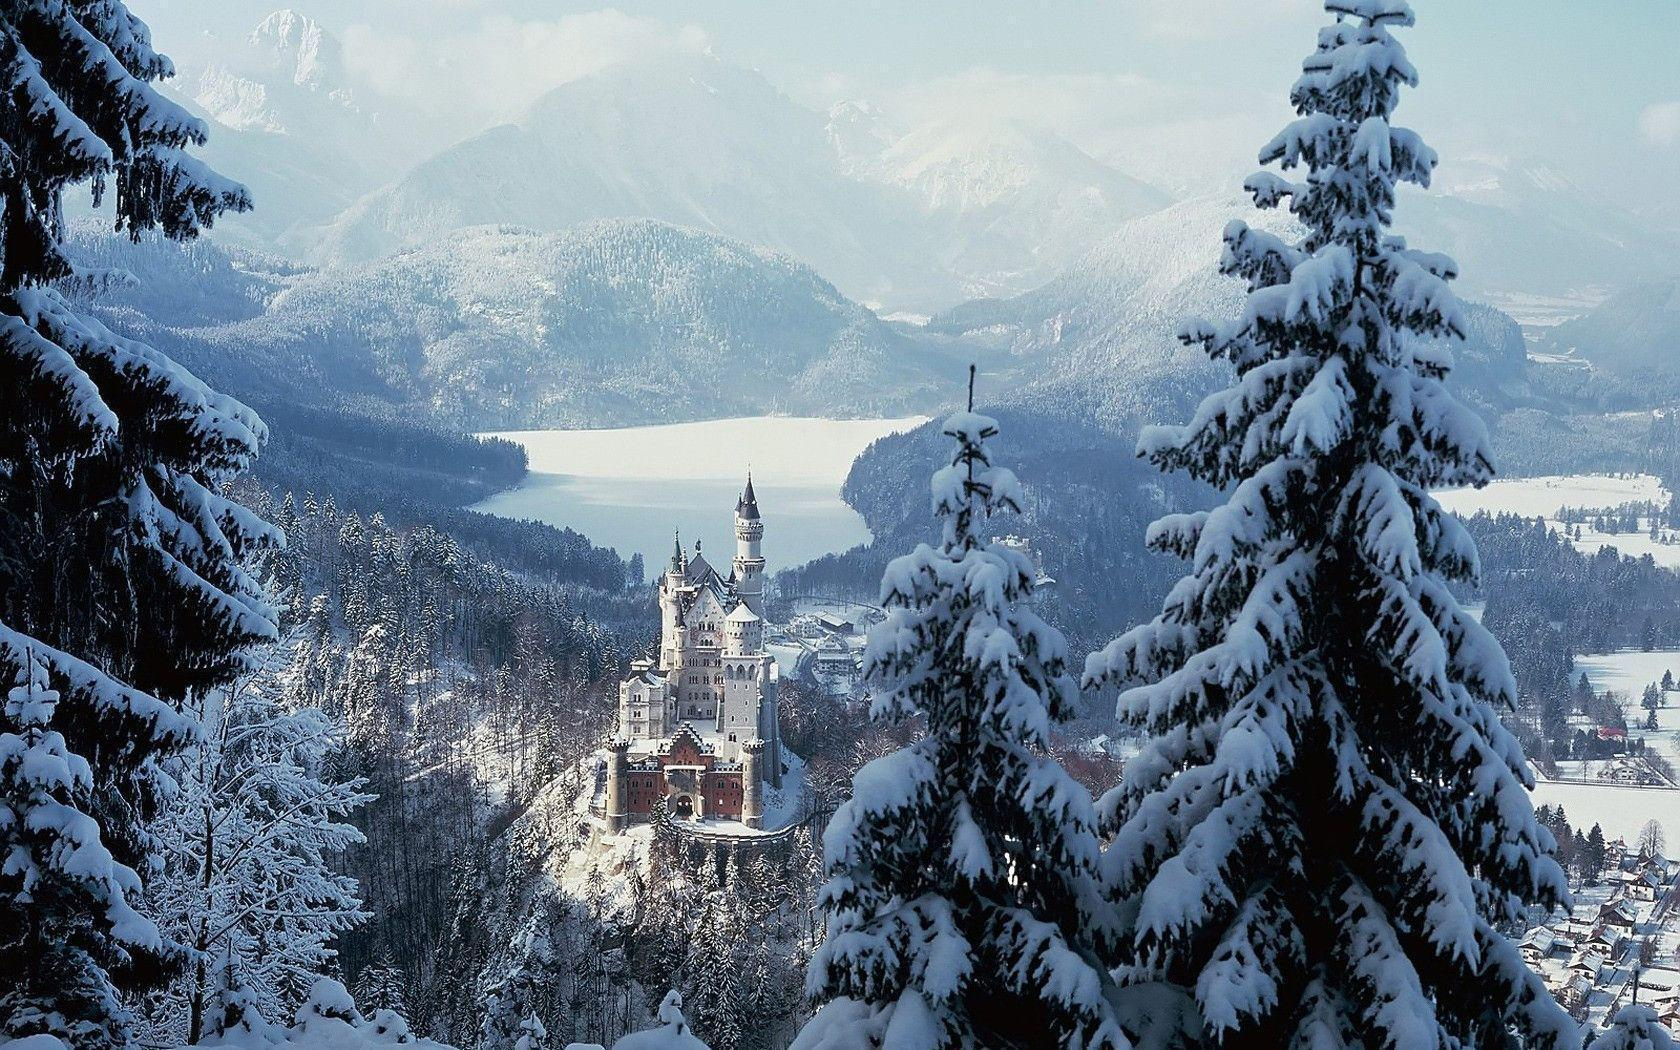 Neuschwanstein Castle Wallpaper - WallpapersDB